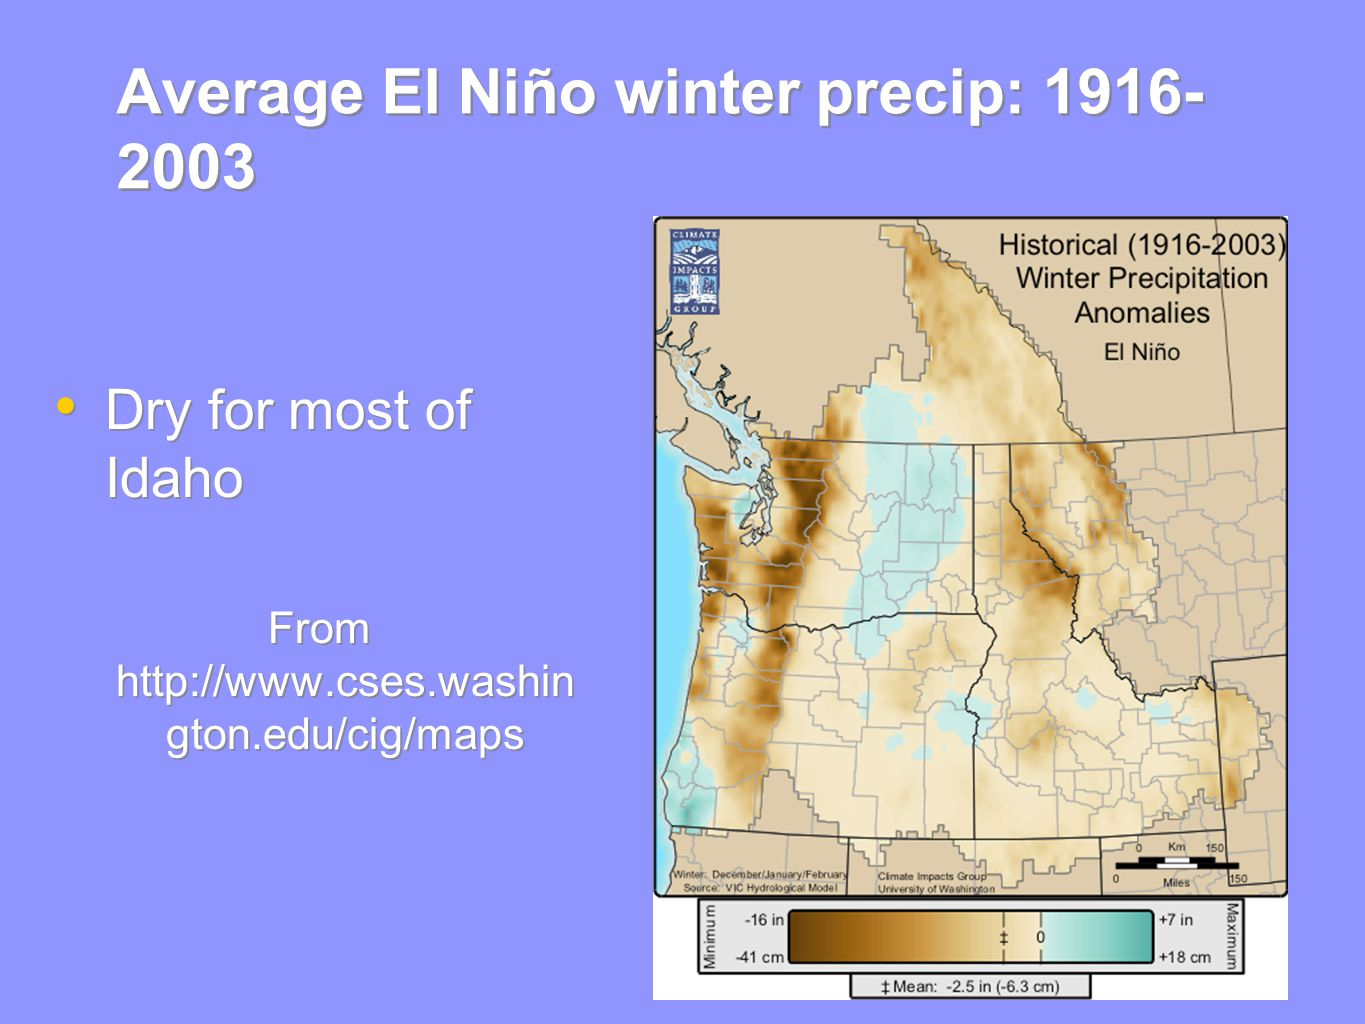 Average El Niño winter precip: Dry for most of Idaho From   gton.edu/cig/maps Dry for most of Idaho From   gton.edu/cig/maps